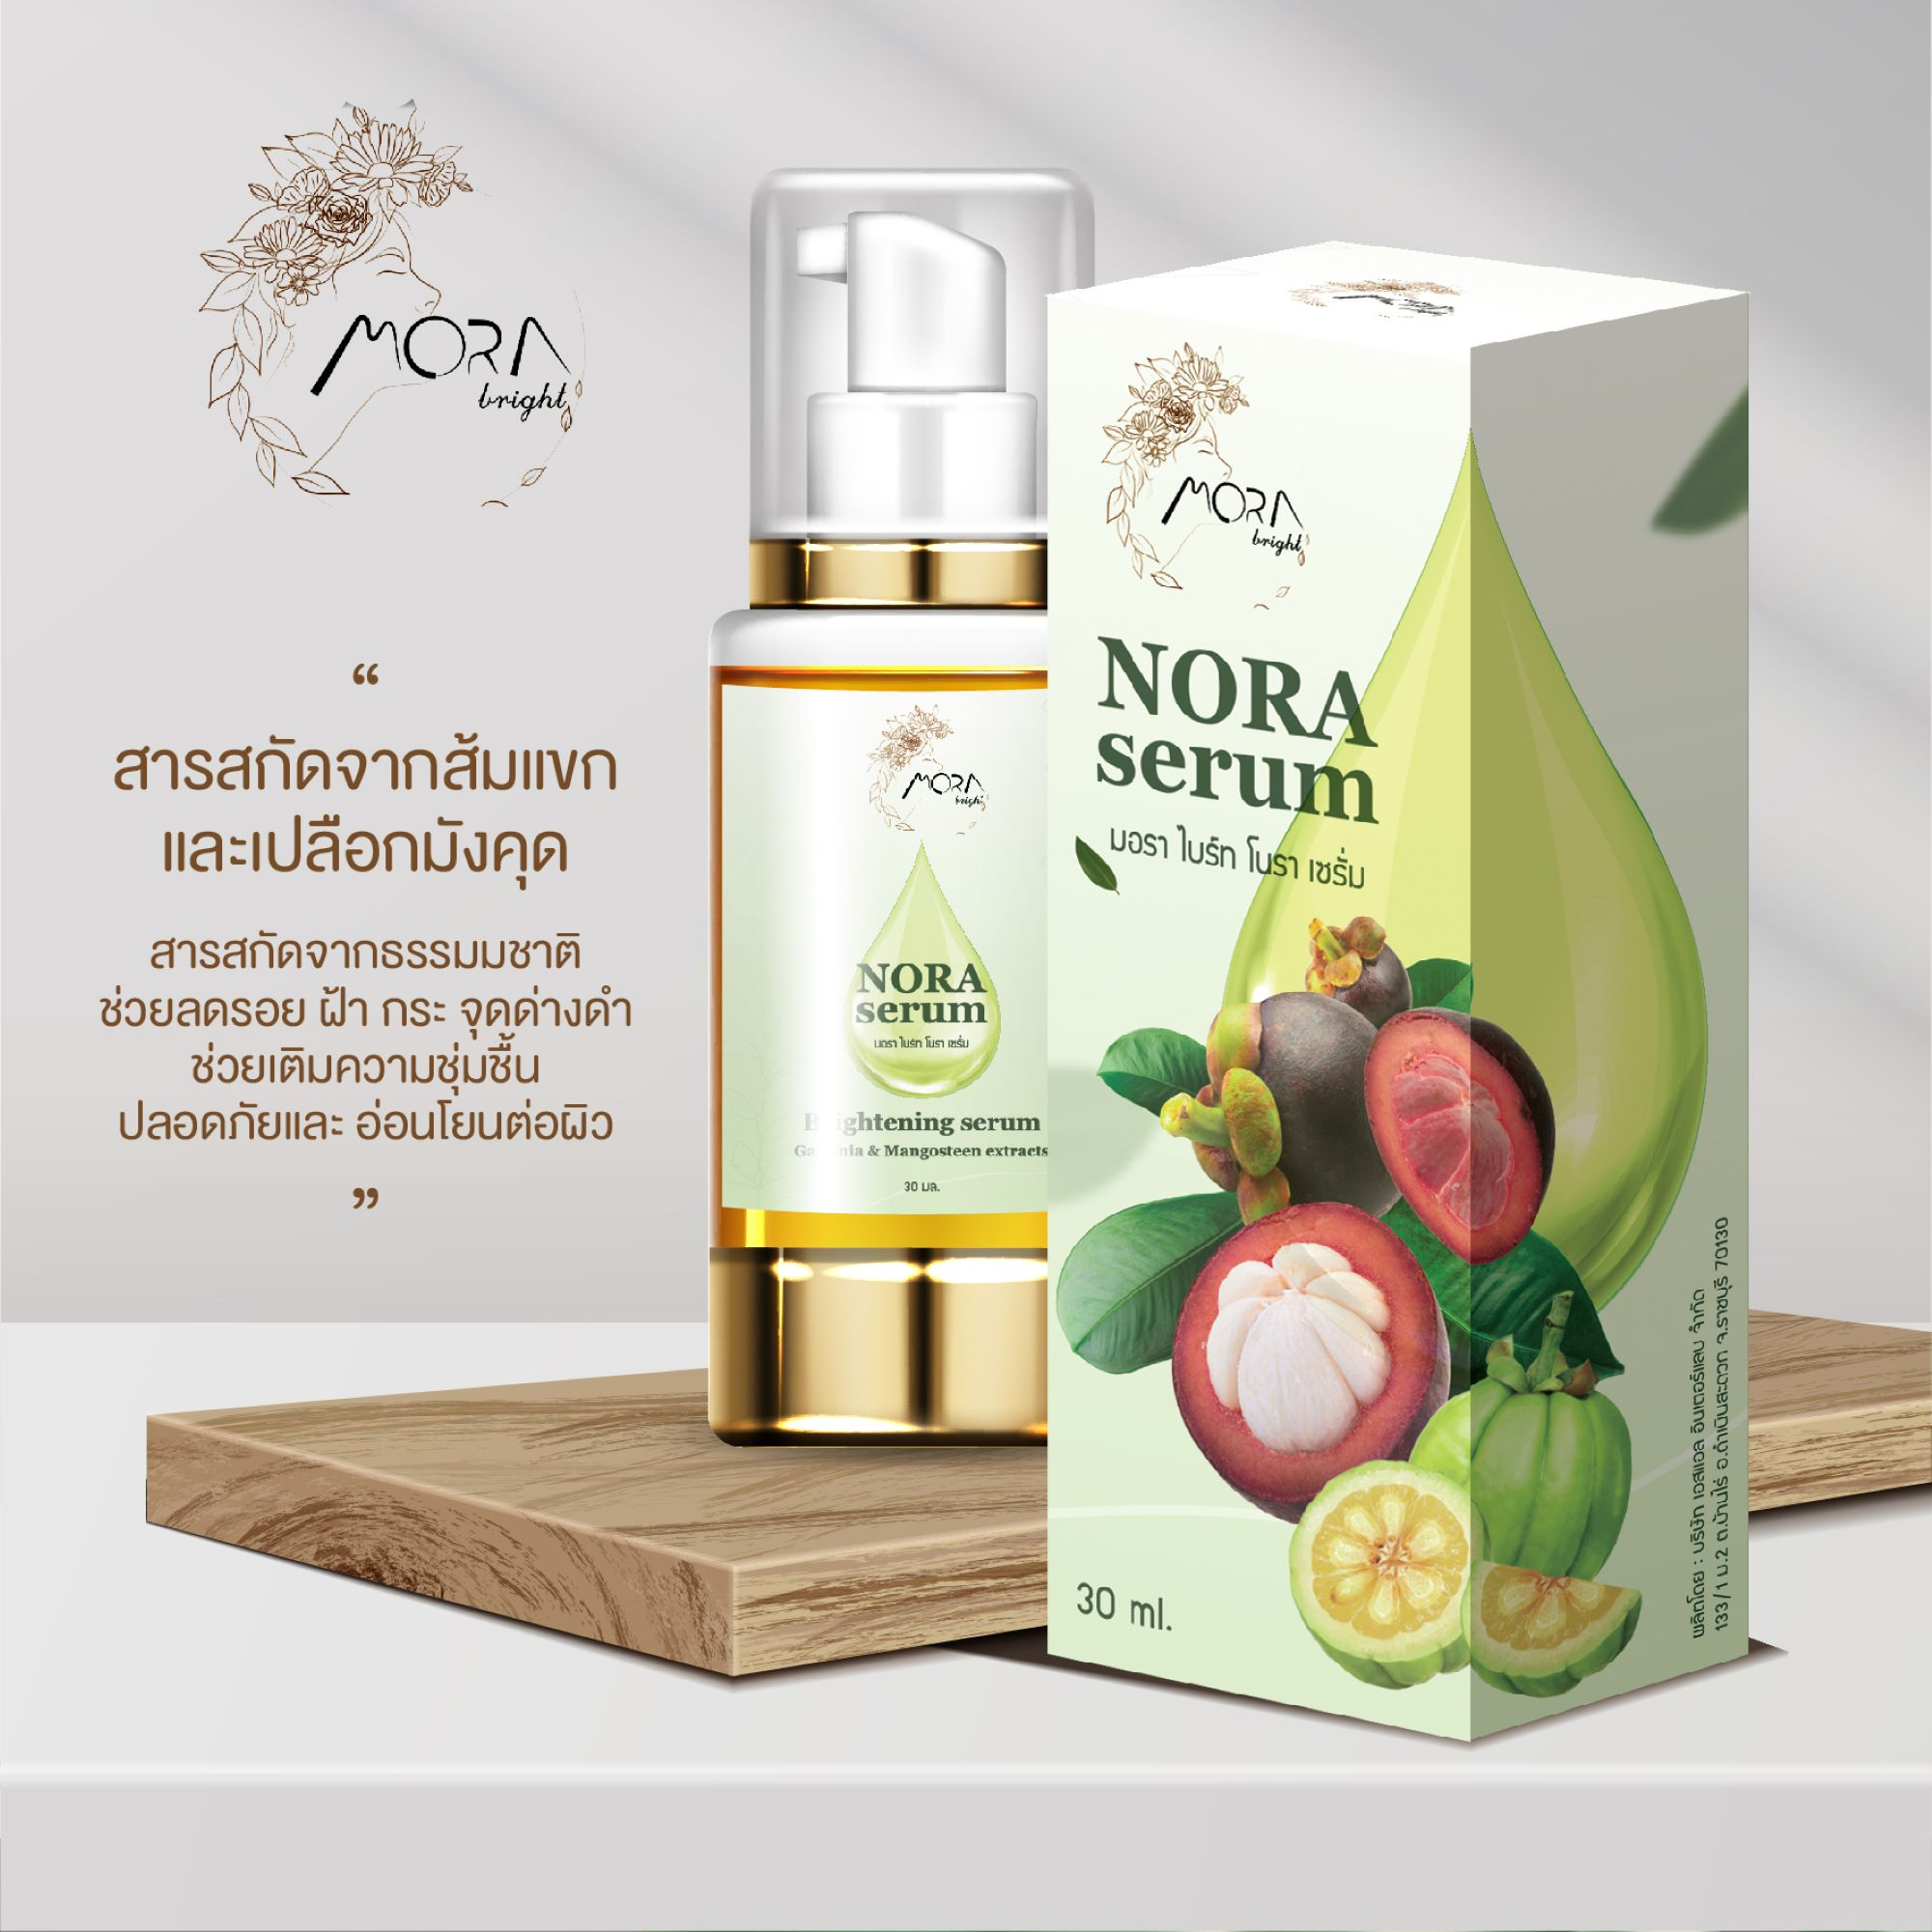 WU turning research into the commercial product Nora serum, a serum extracted from mangosteen and garcinia to help reduce wrinkles, melasma, freckles, and acne.